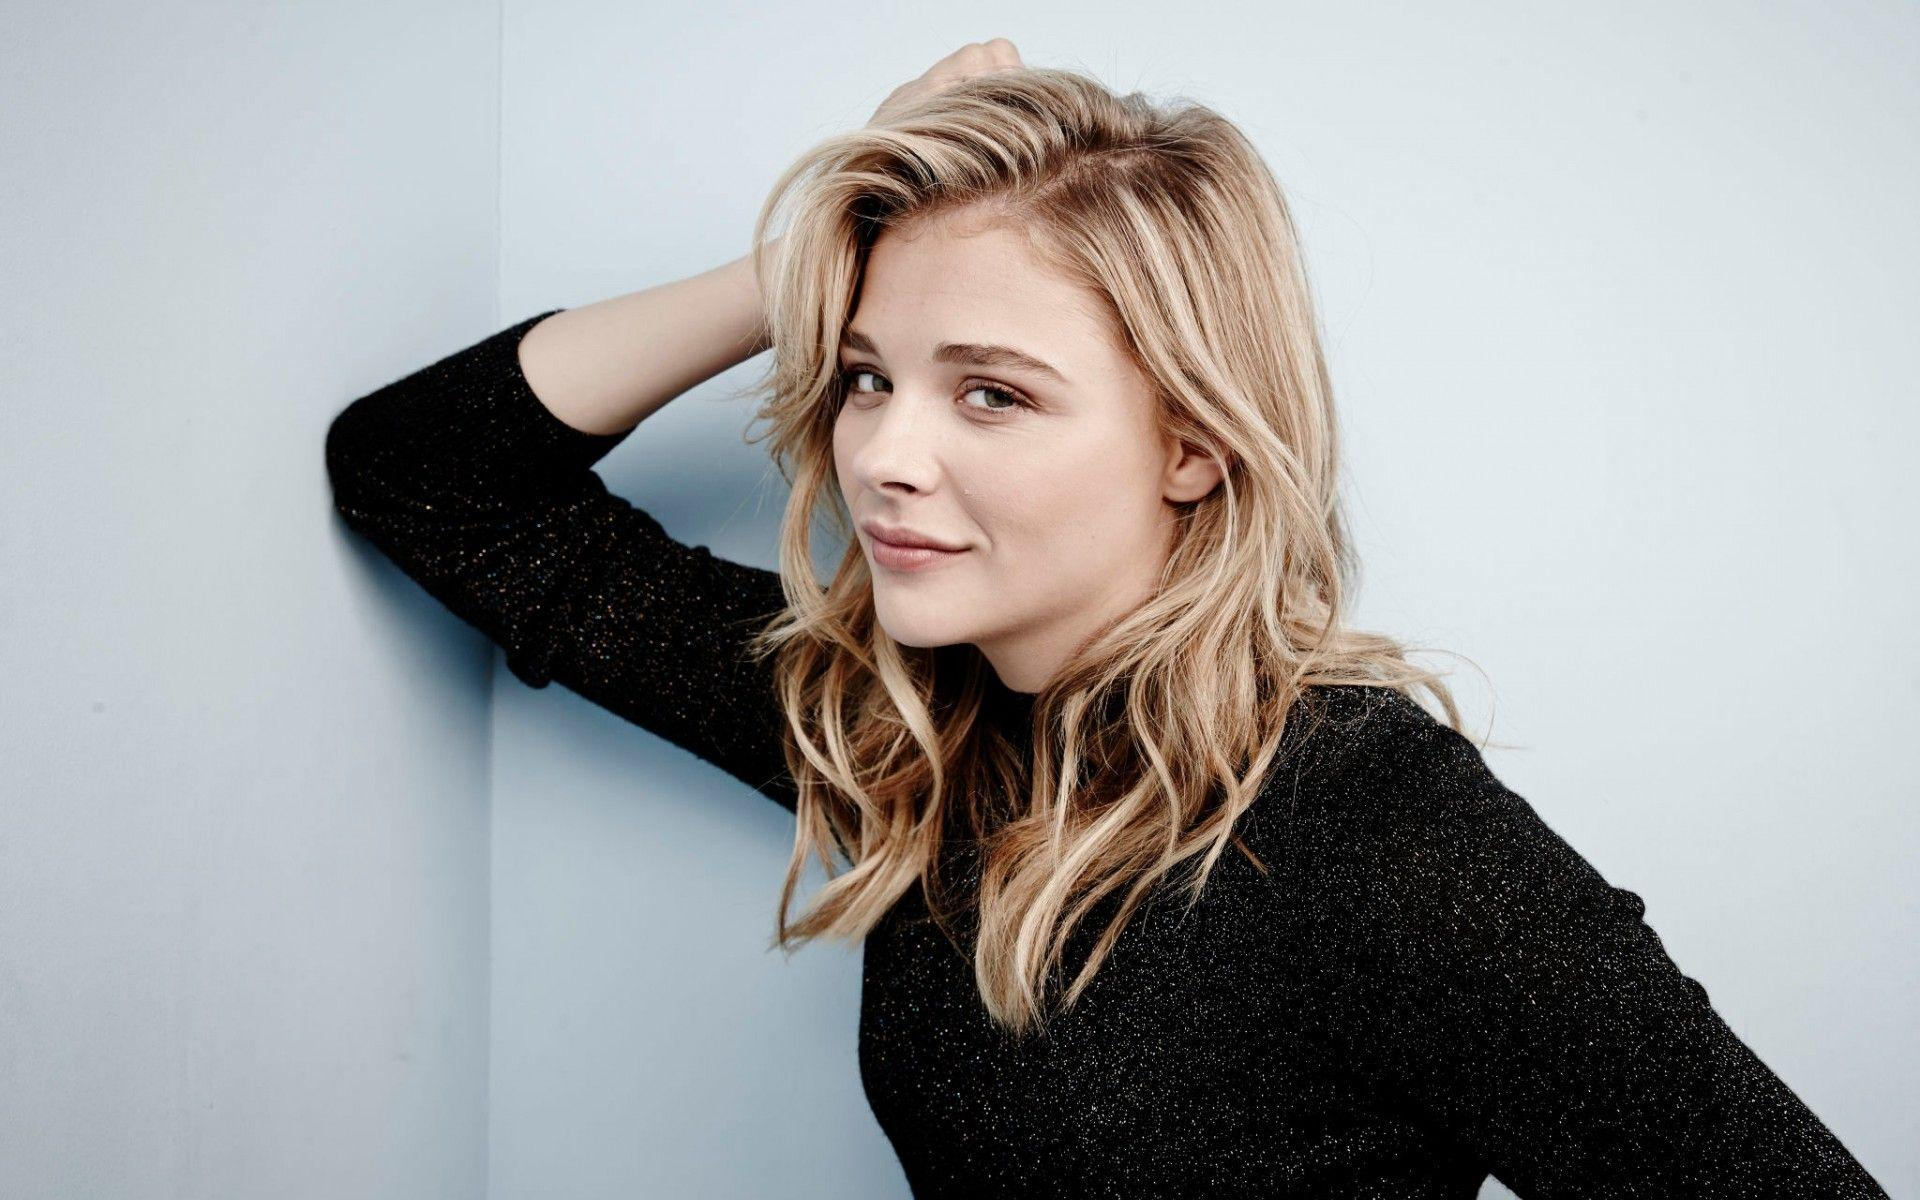 hloe Grace Moretz Wallpapers : Find best latest Chloe Grace Moretz